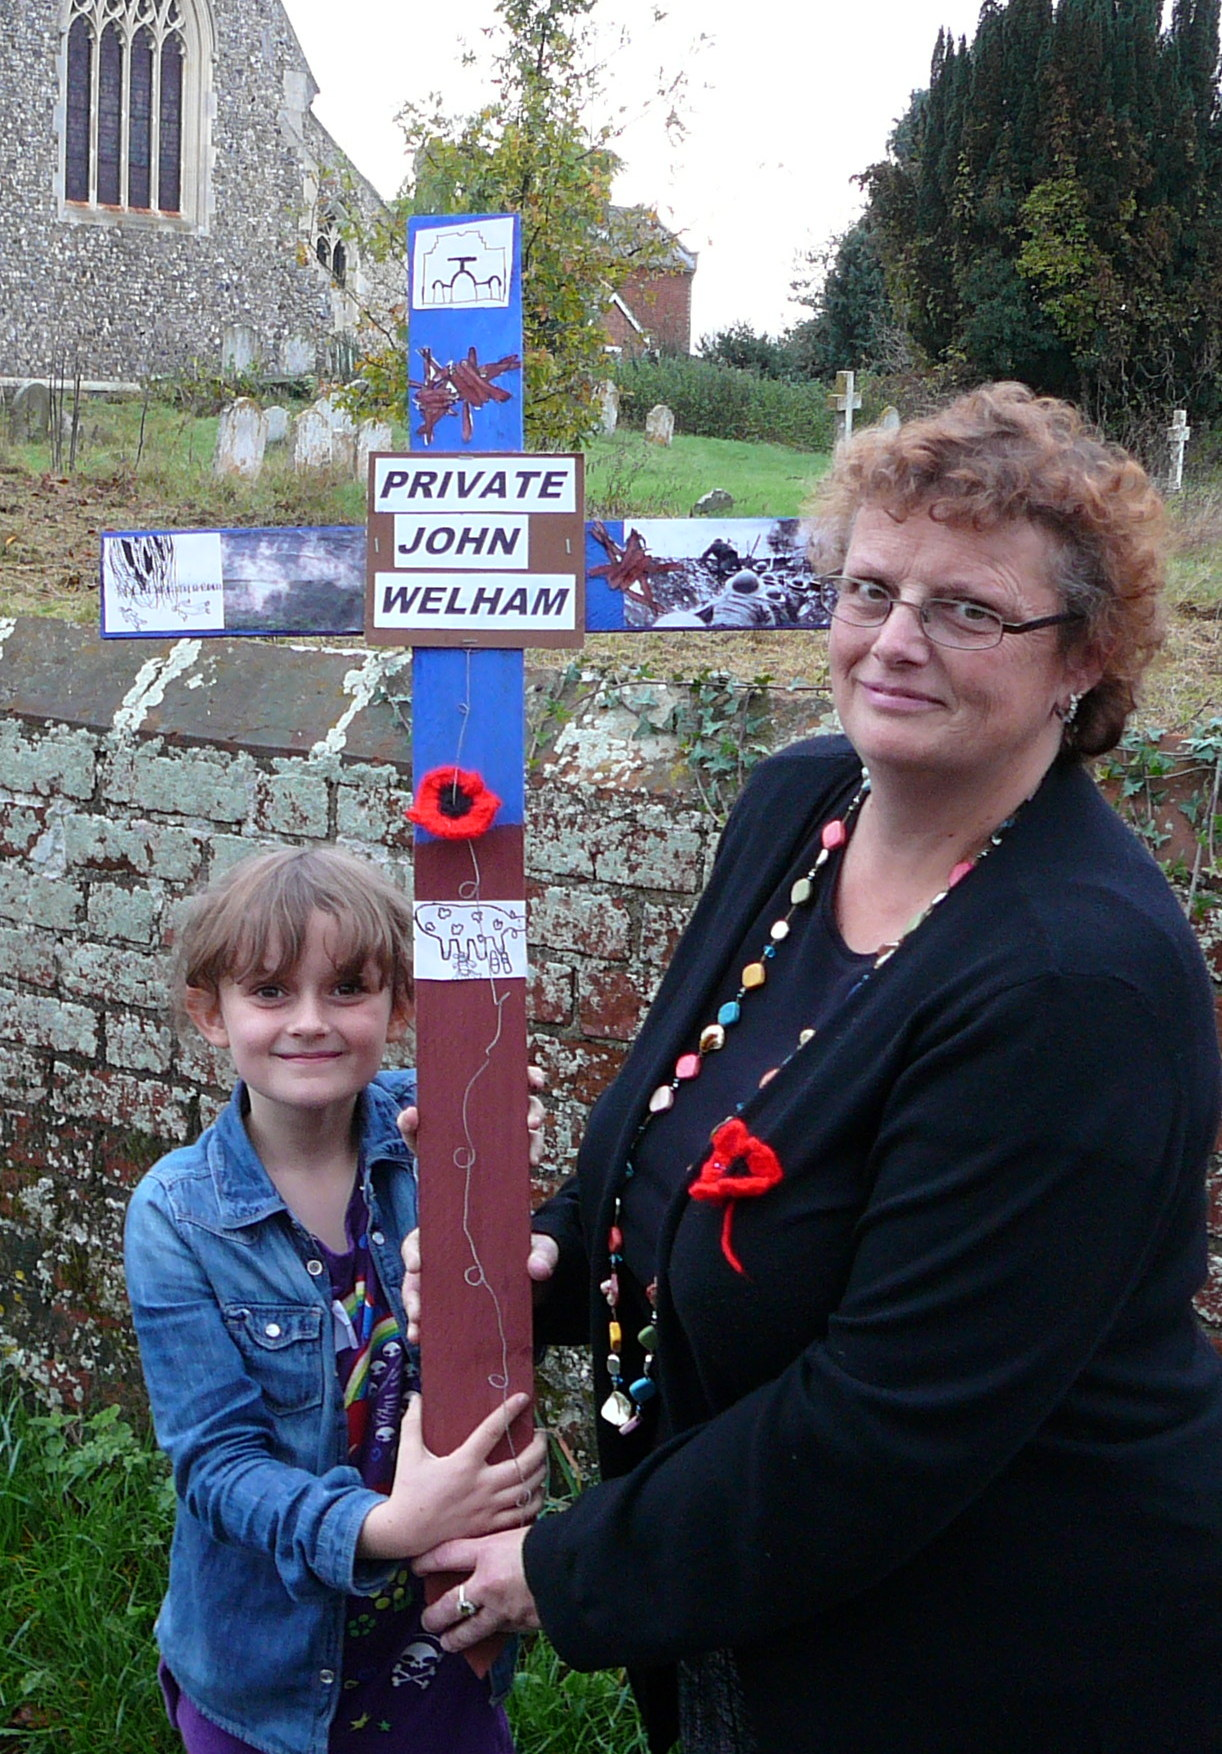 115 AMY AND HELEN CHITTY WITH THE CROSS IN MEMORY OF JOHN WELHAM.jpg